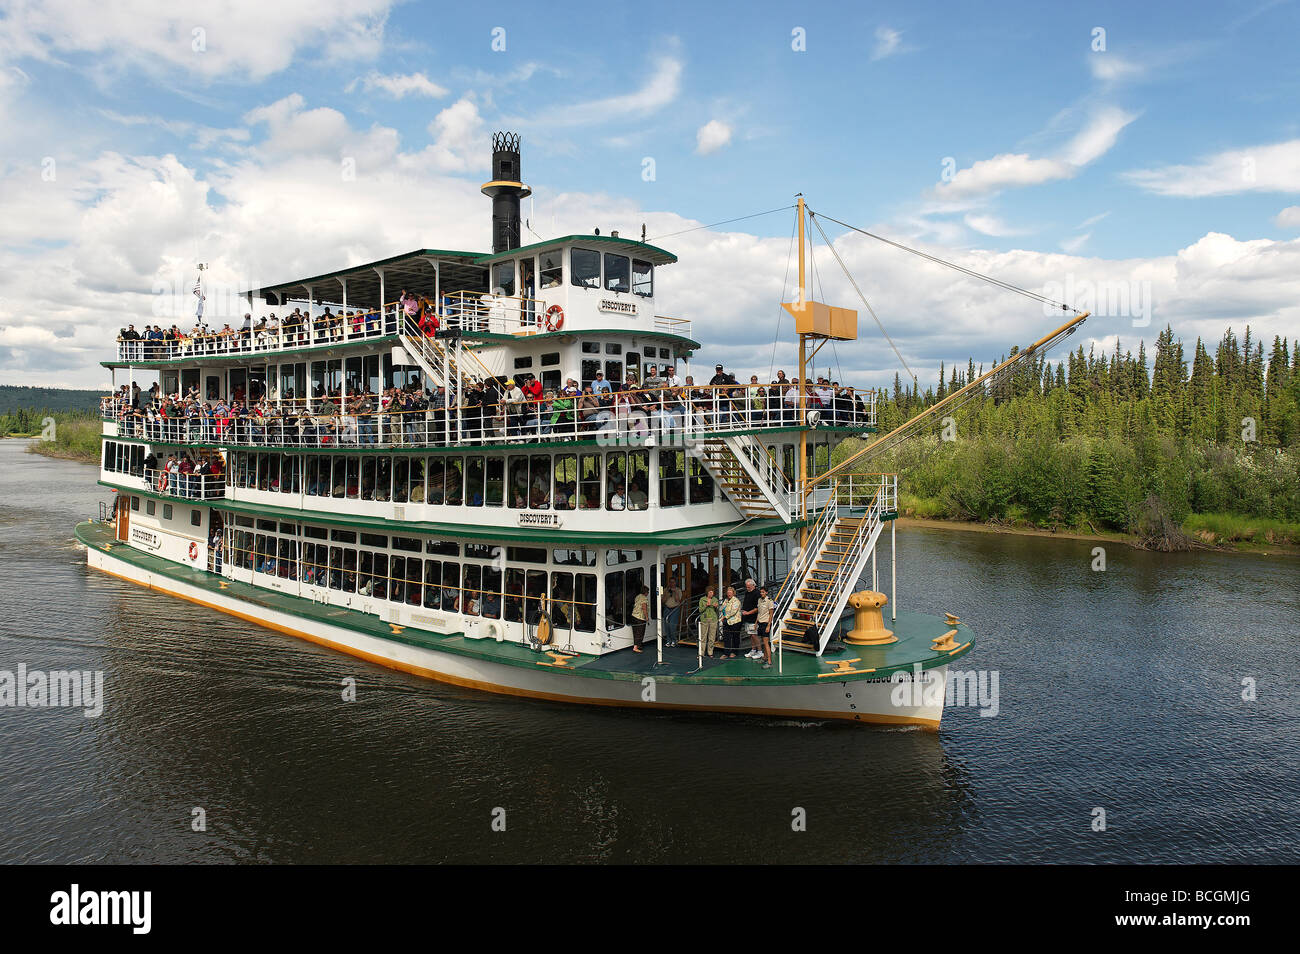 Riverboat Discovery Tour